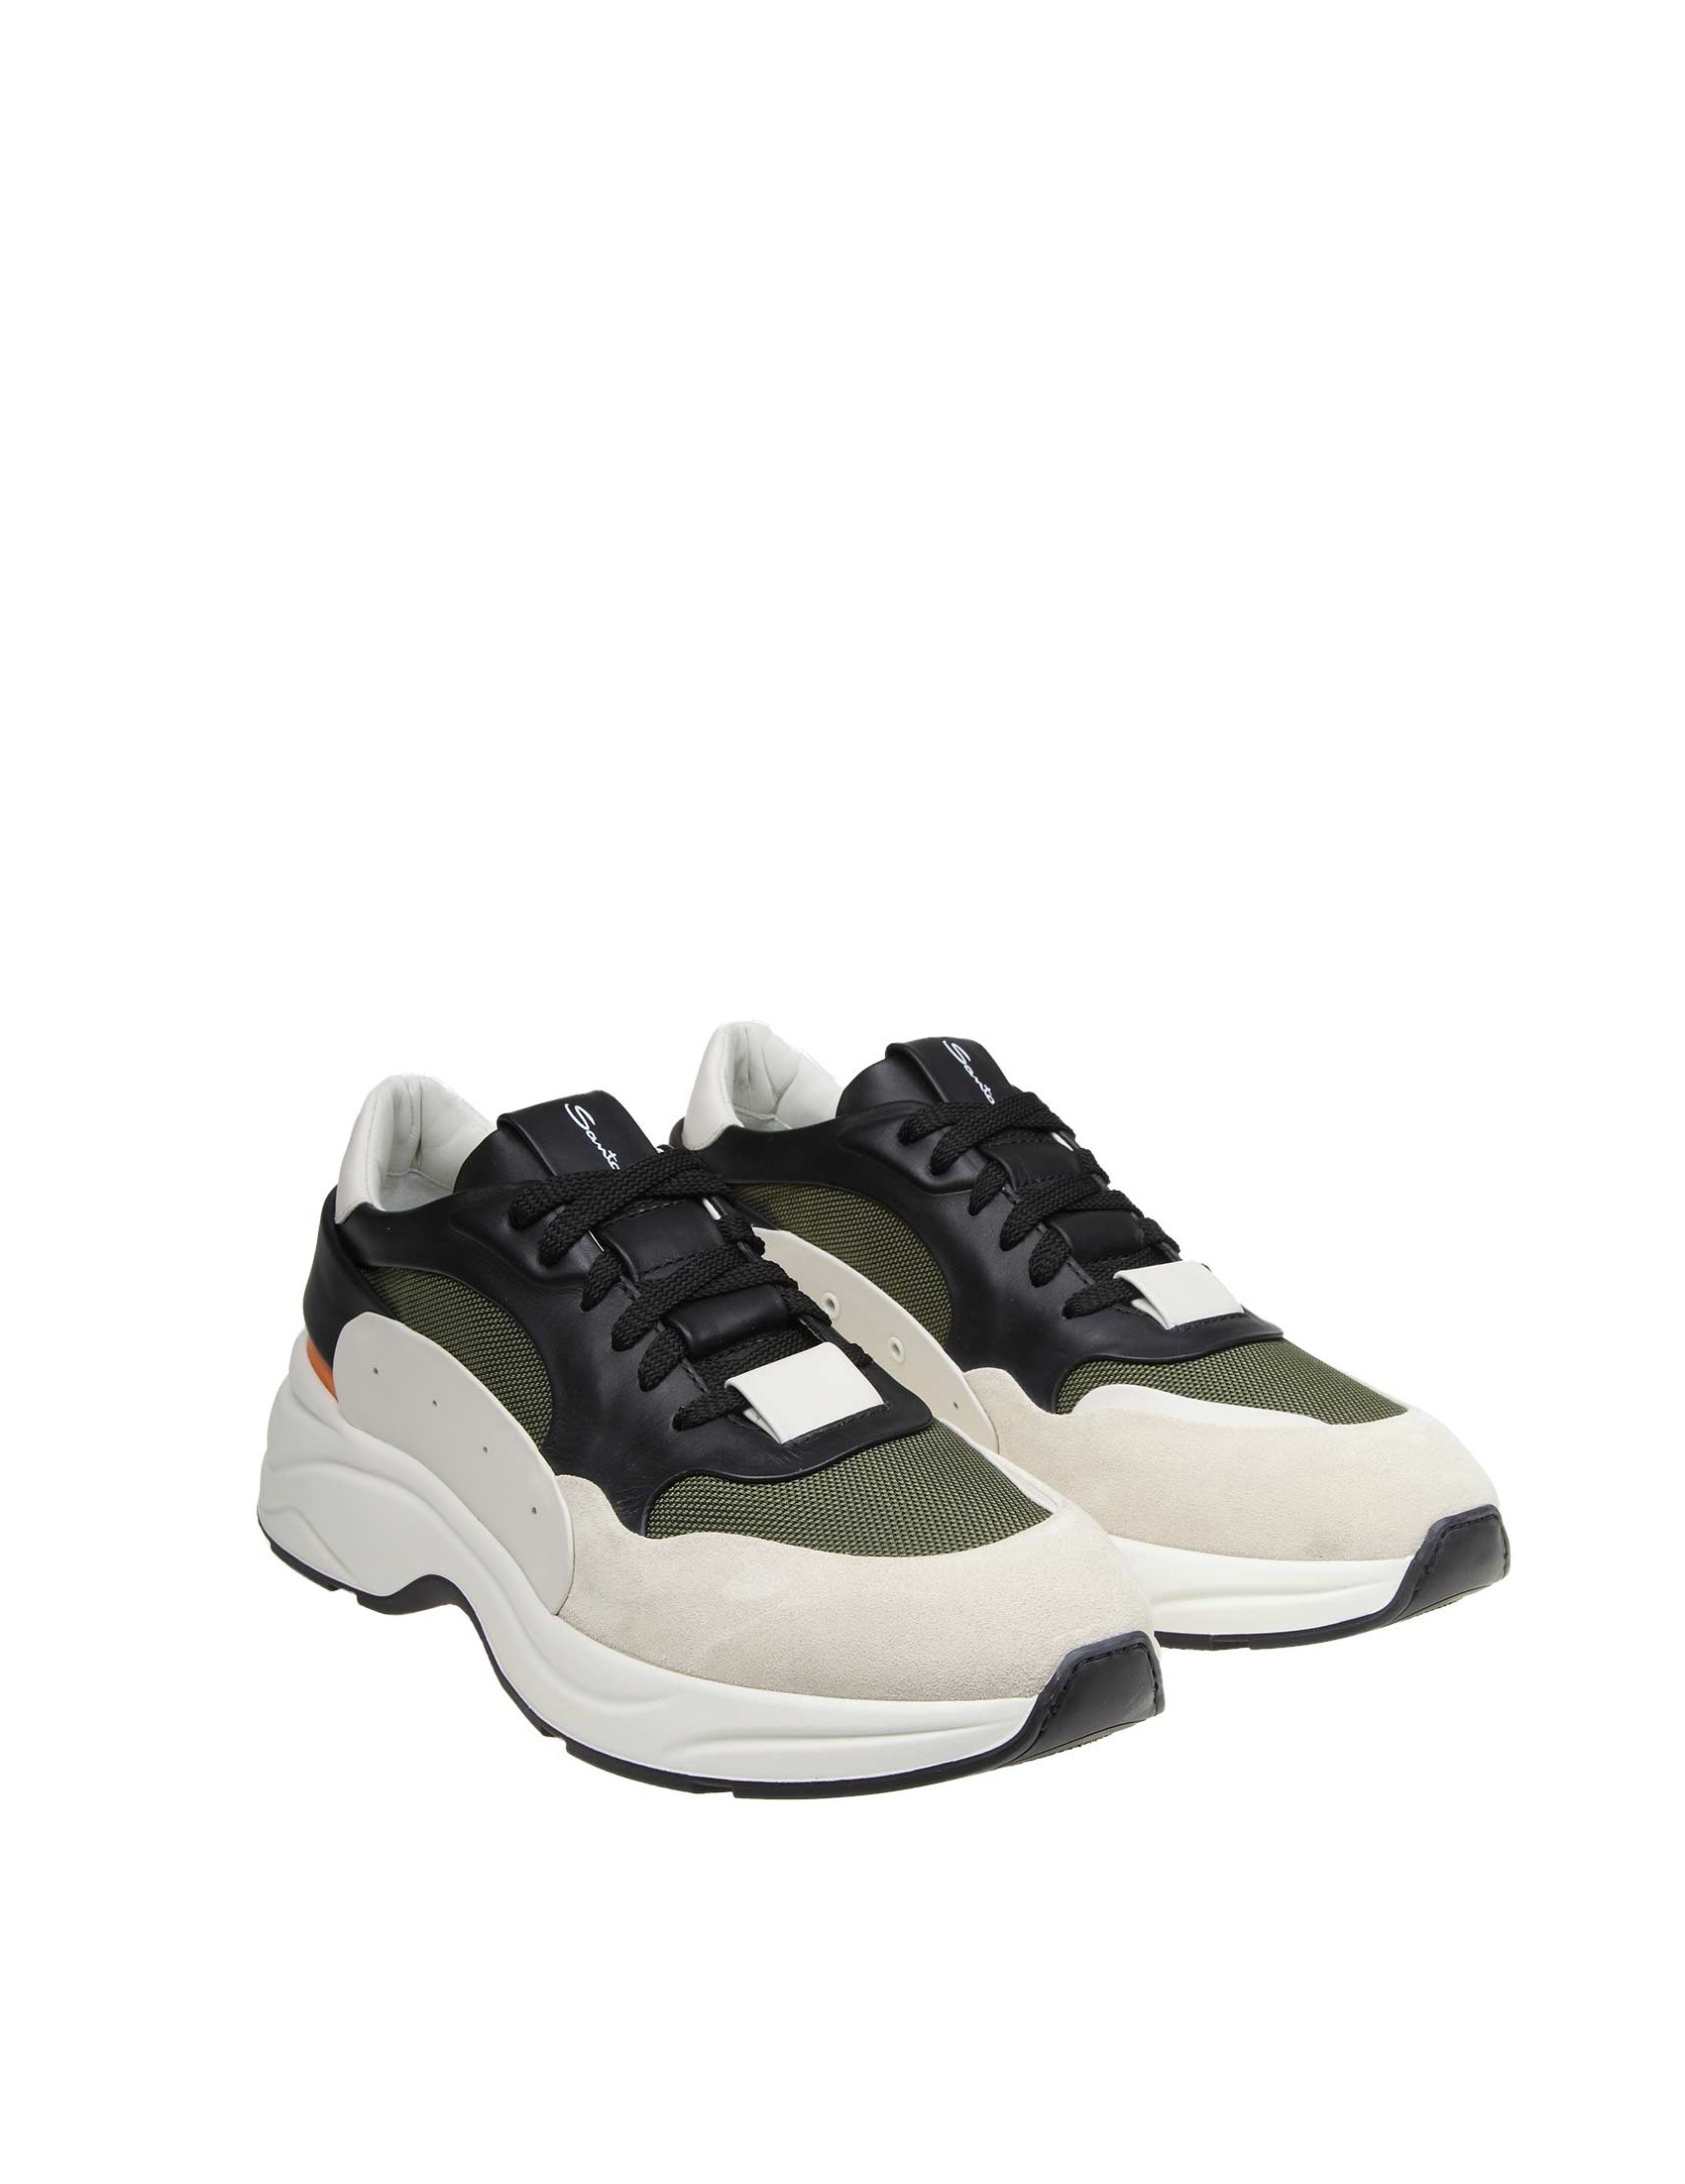 14d15ed725c SANTONI SNEAKERS IN FABRIC AND SUEDE